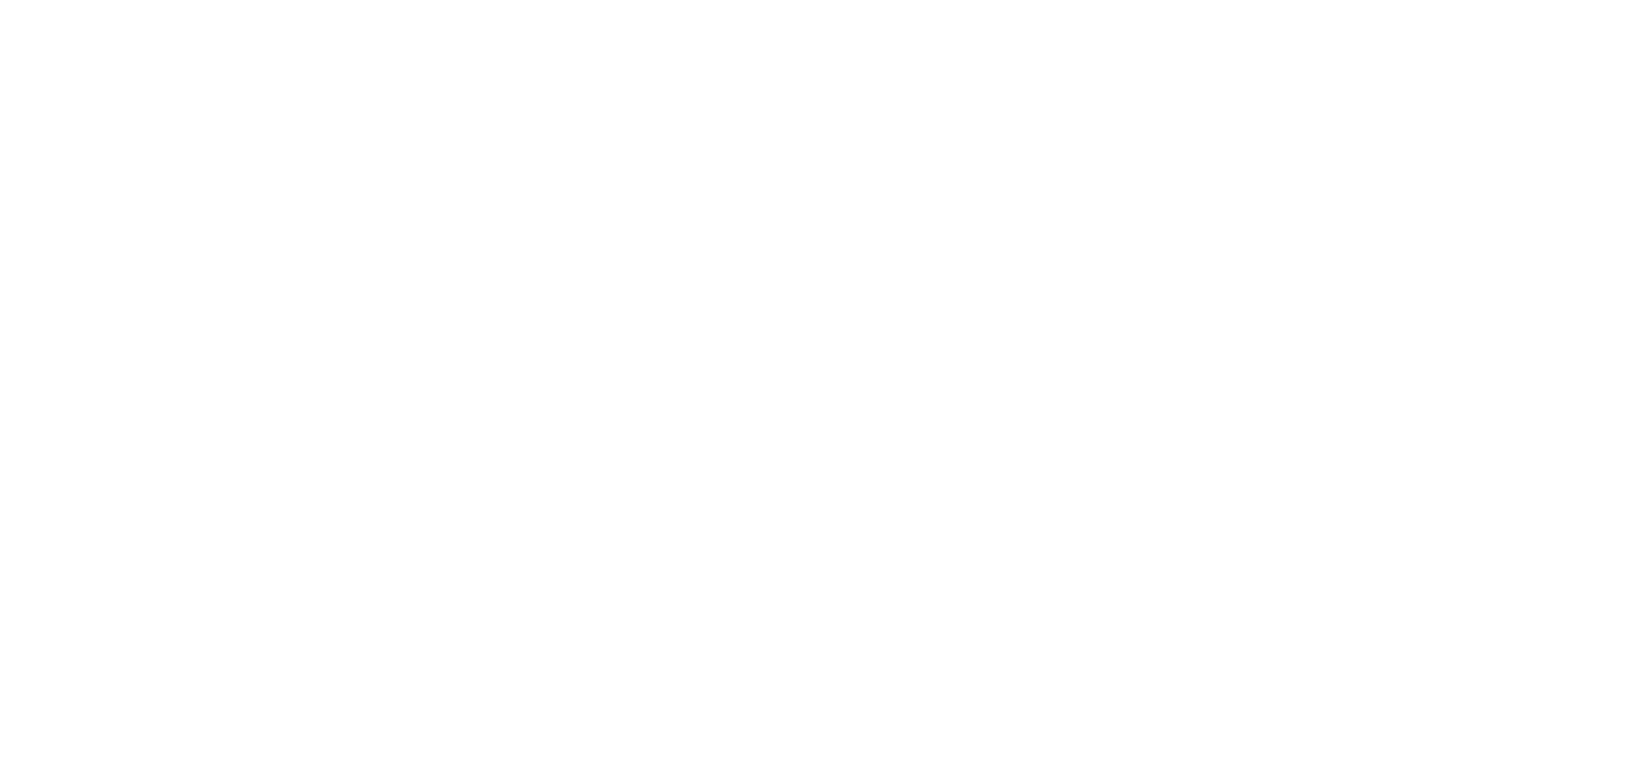 CHASE IT